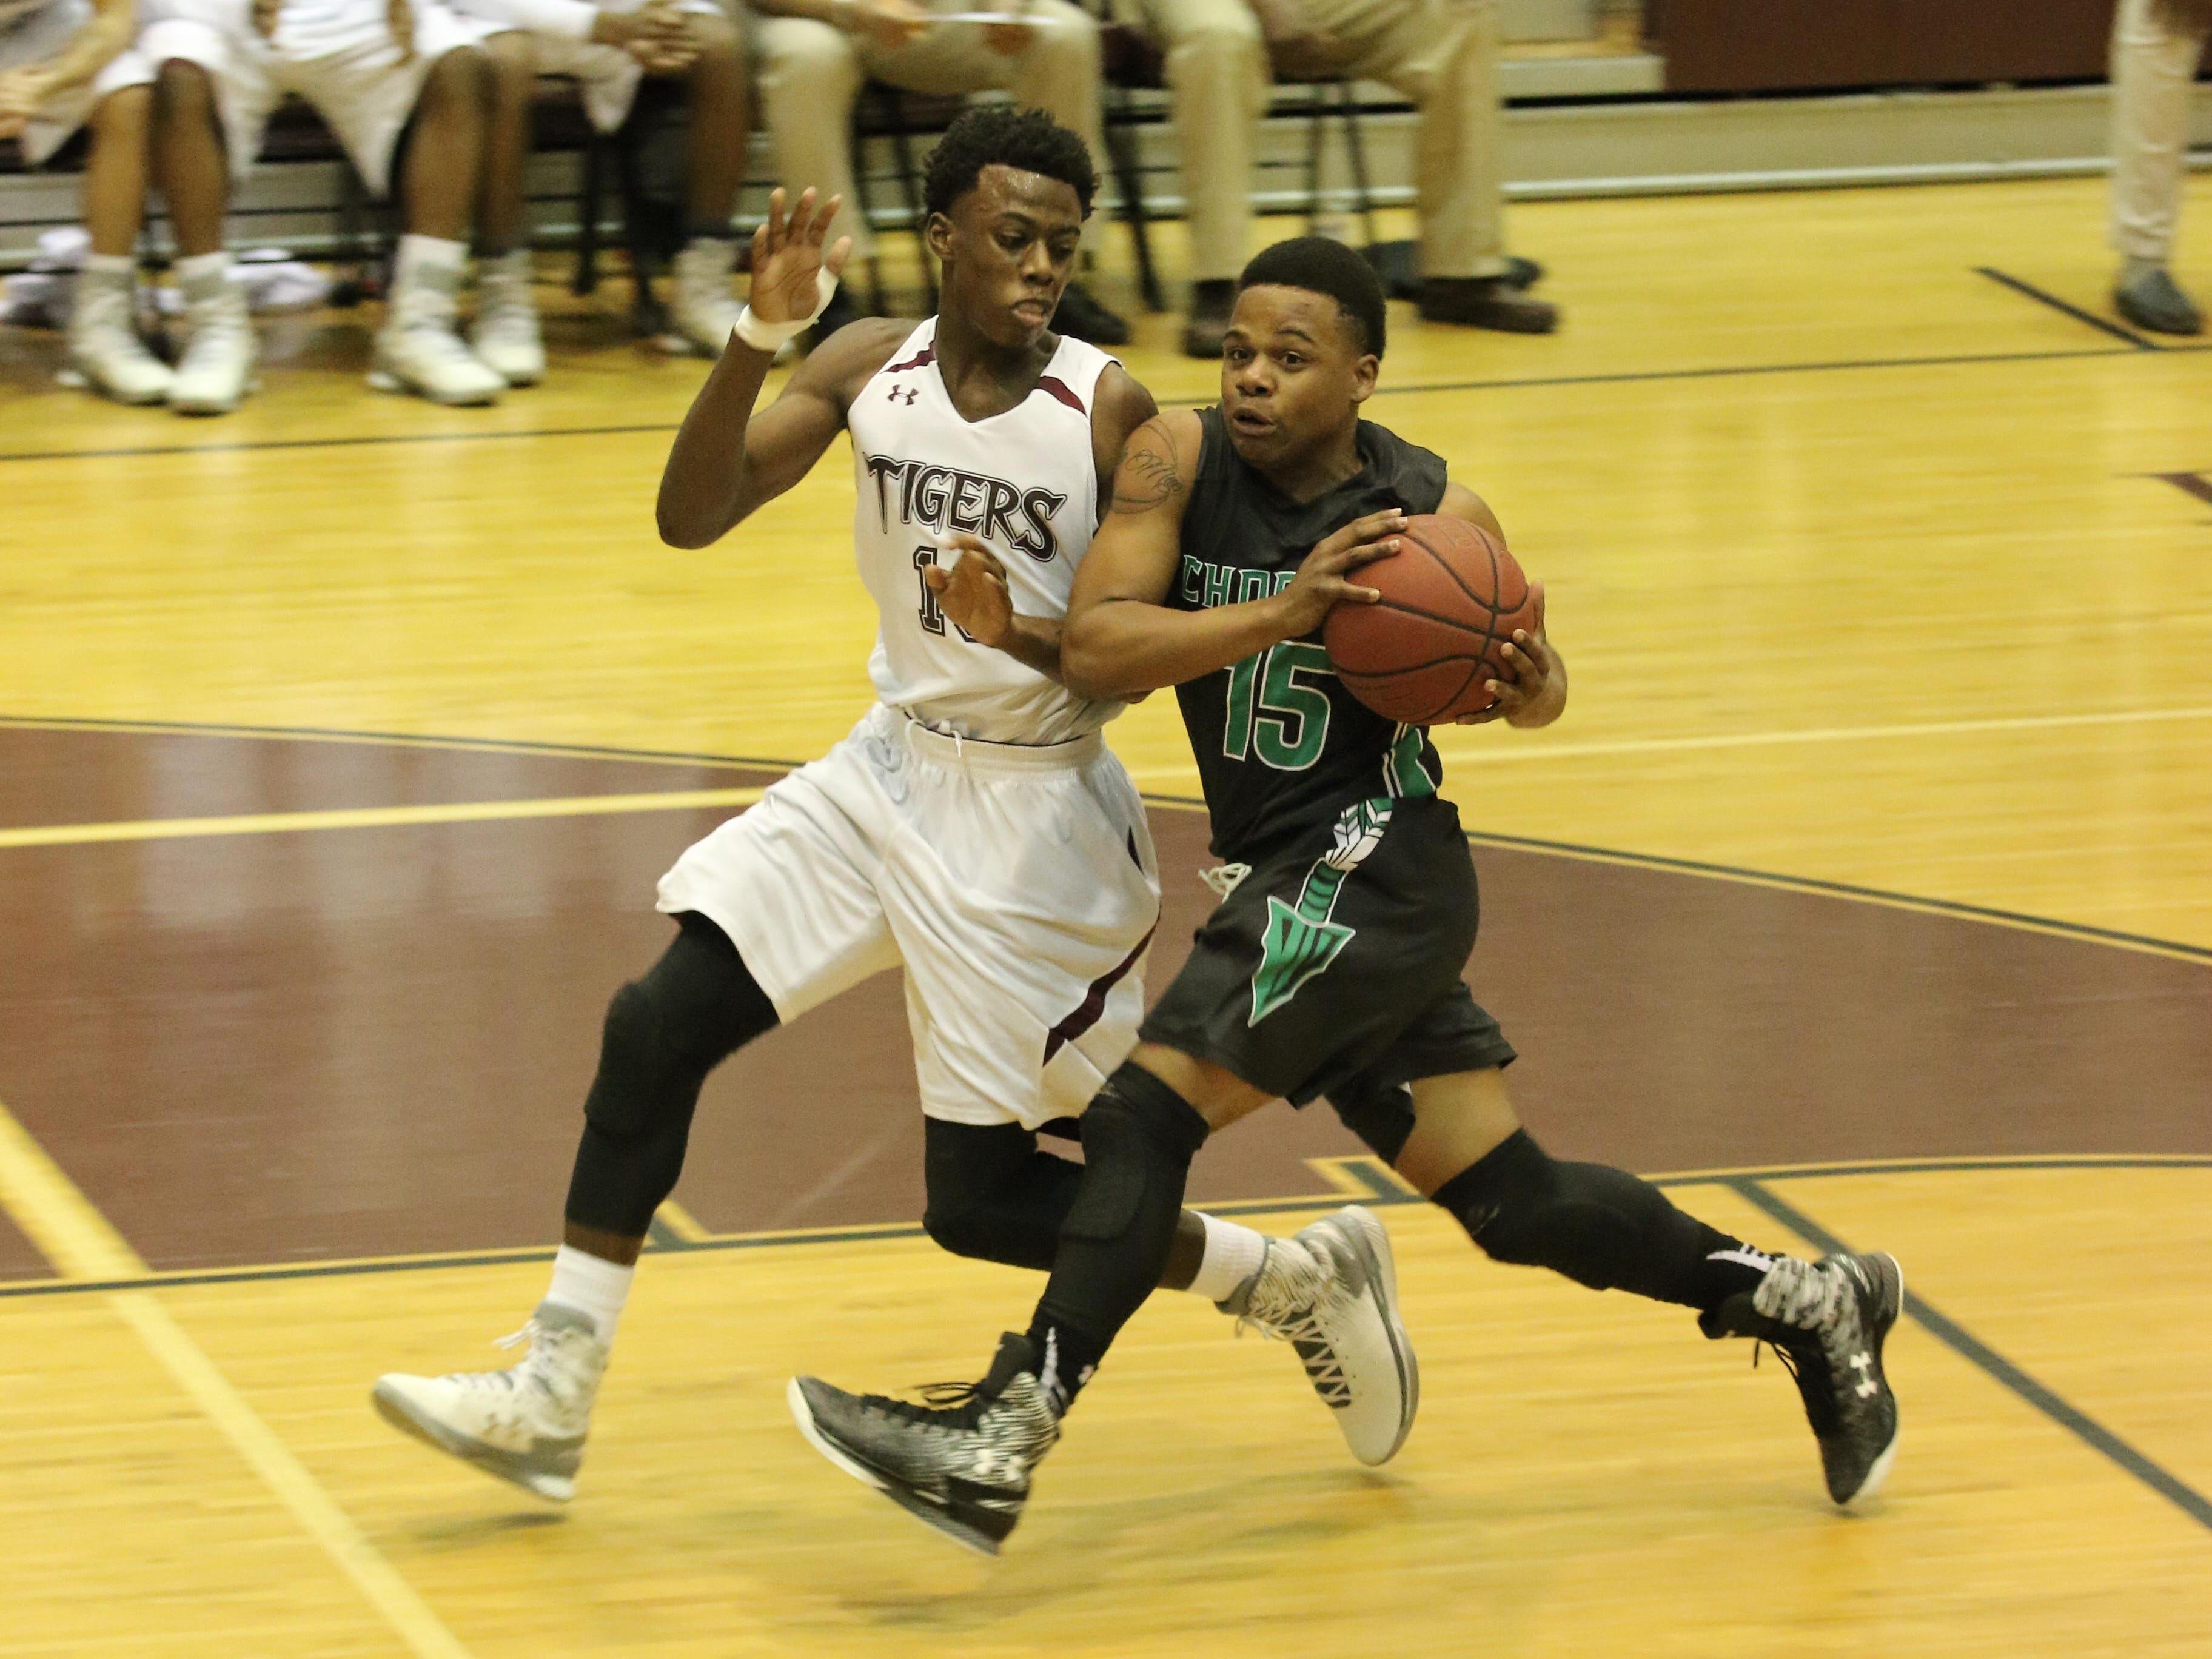 Choctaw's D'eddrick Rodgers, right, works to get past Pensacola's Zykereyan Jones Tuesday night during the Region 1-6A semifinal game at Pensacola High School.